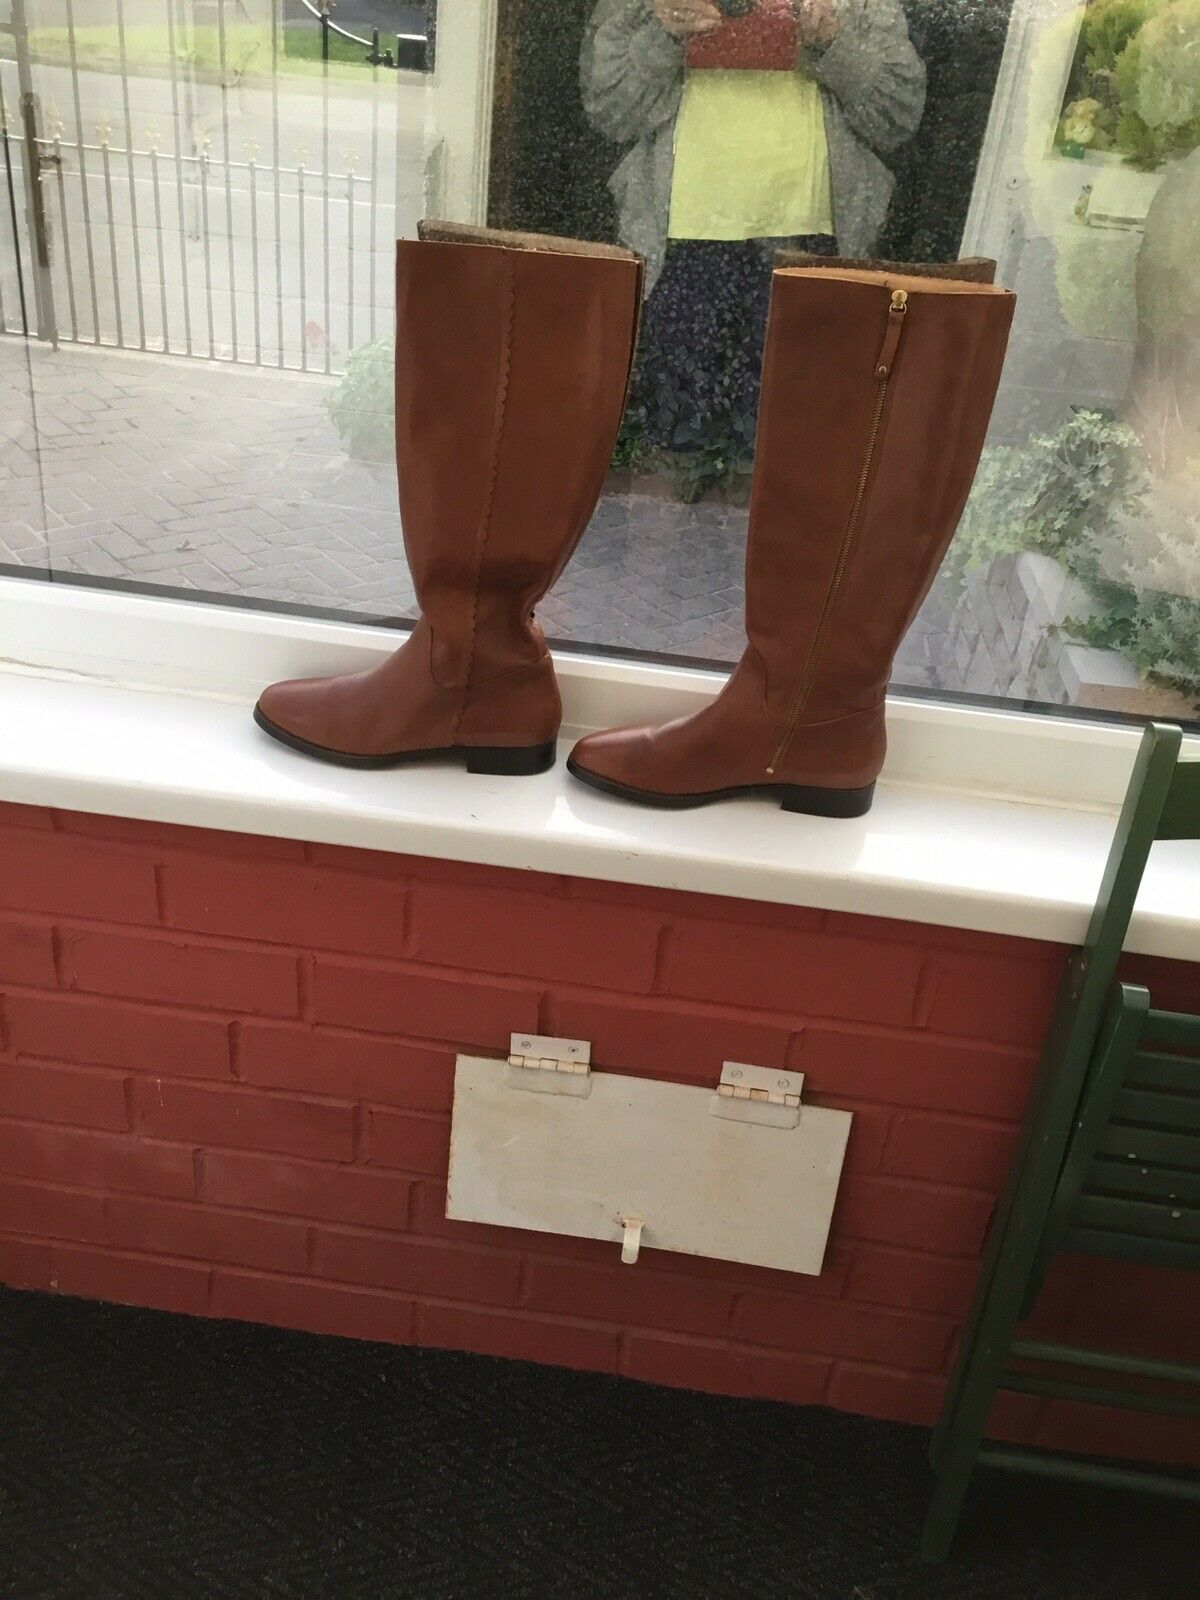 Boden Size 40 (6.1/2) Tan Malvern Long Boots Worn A Handful Of Times Great Cndtn